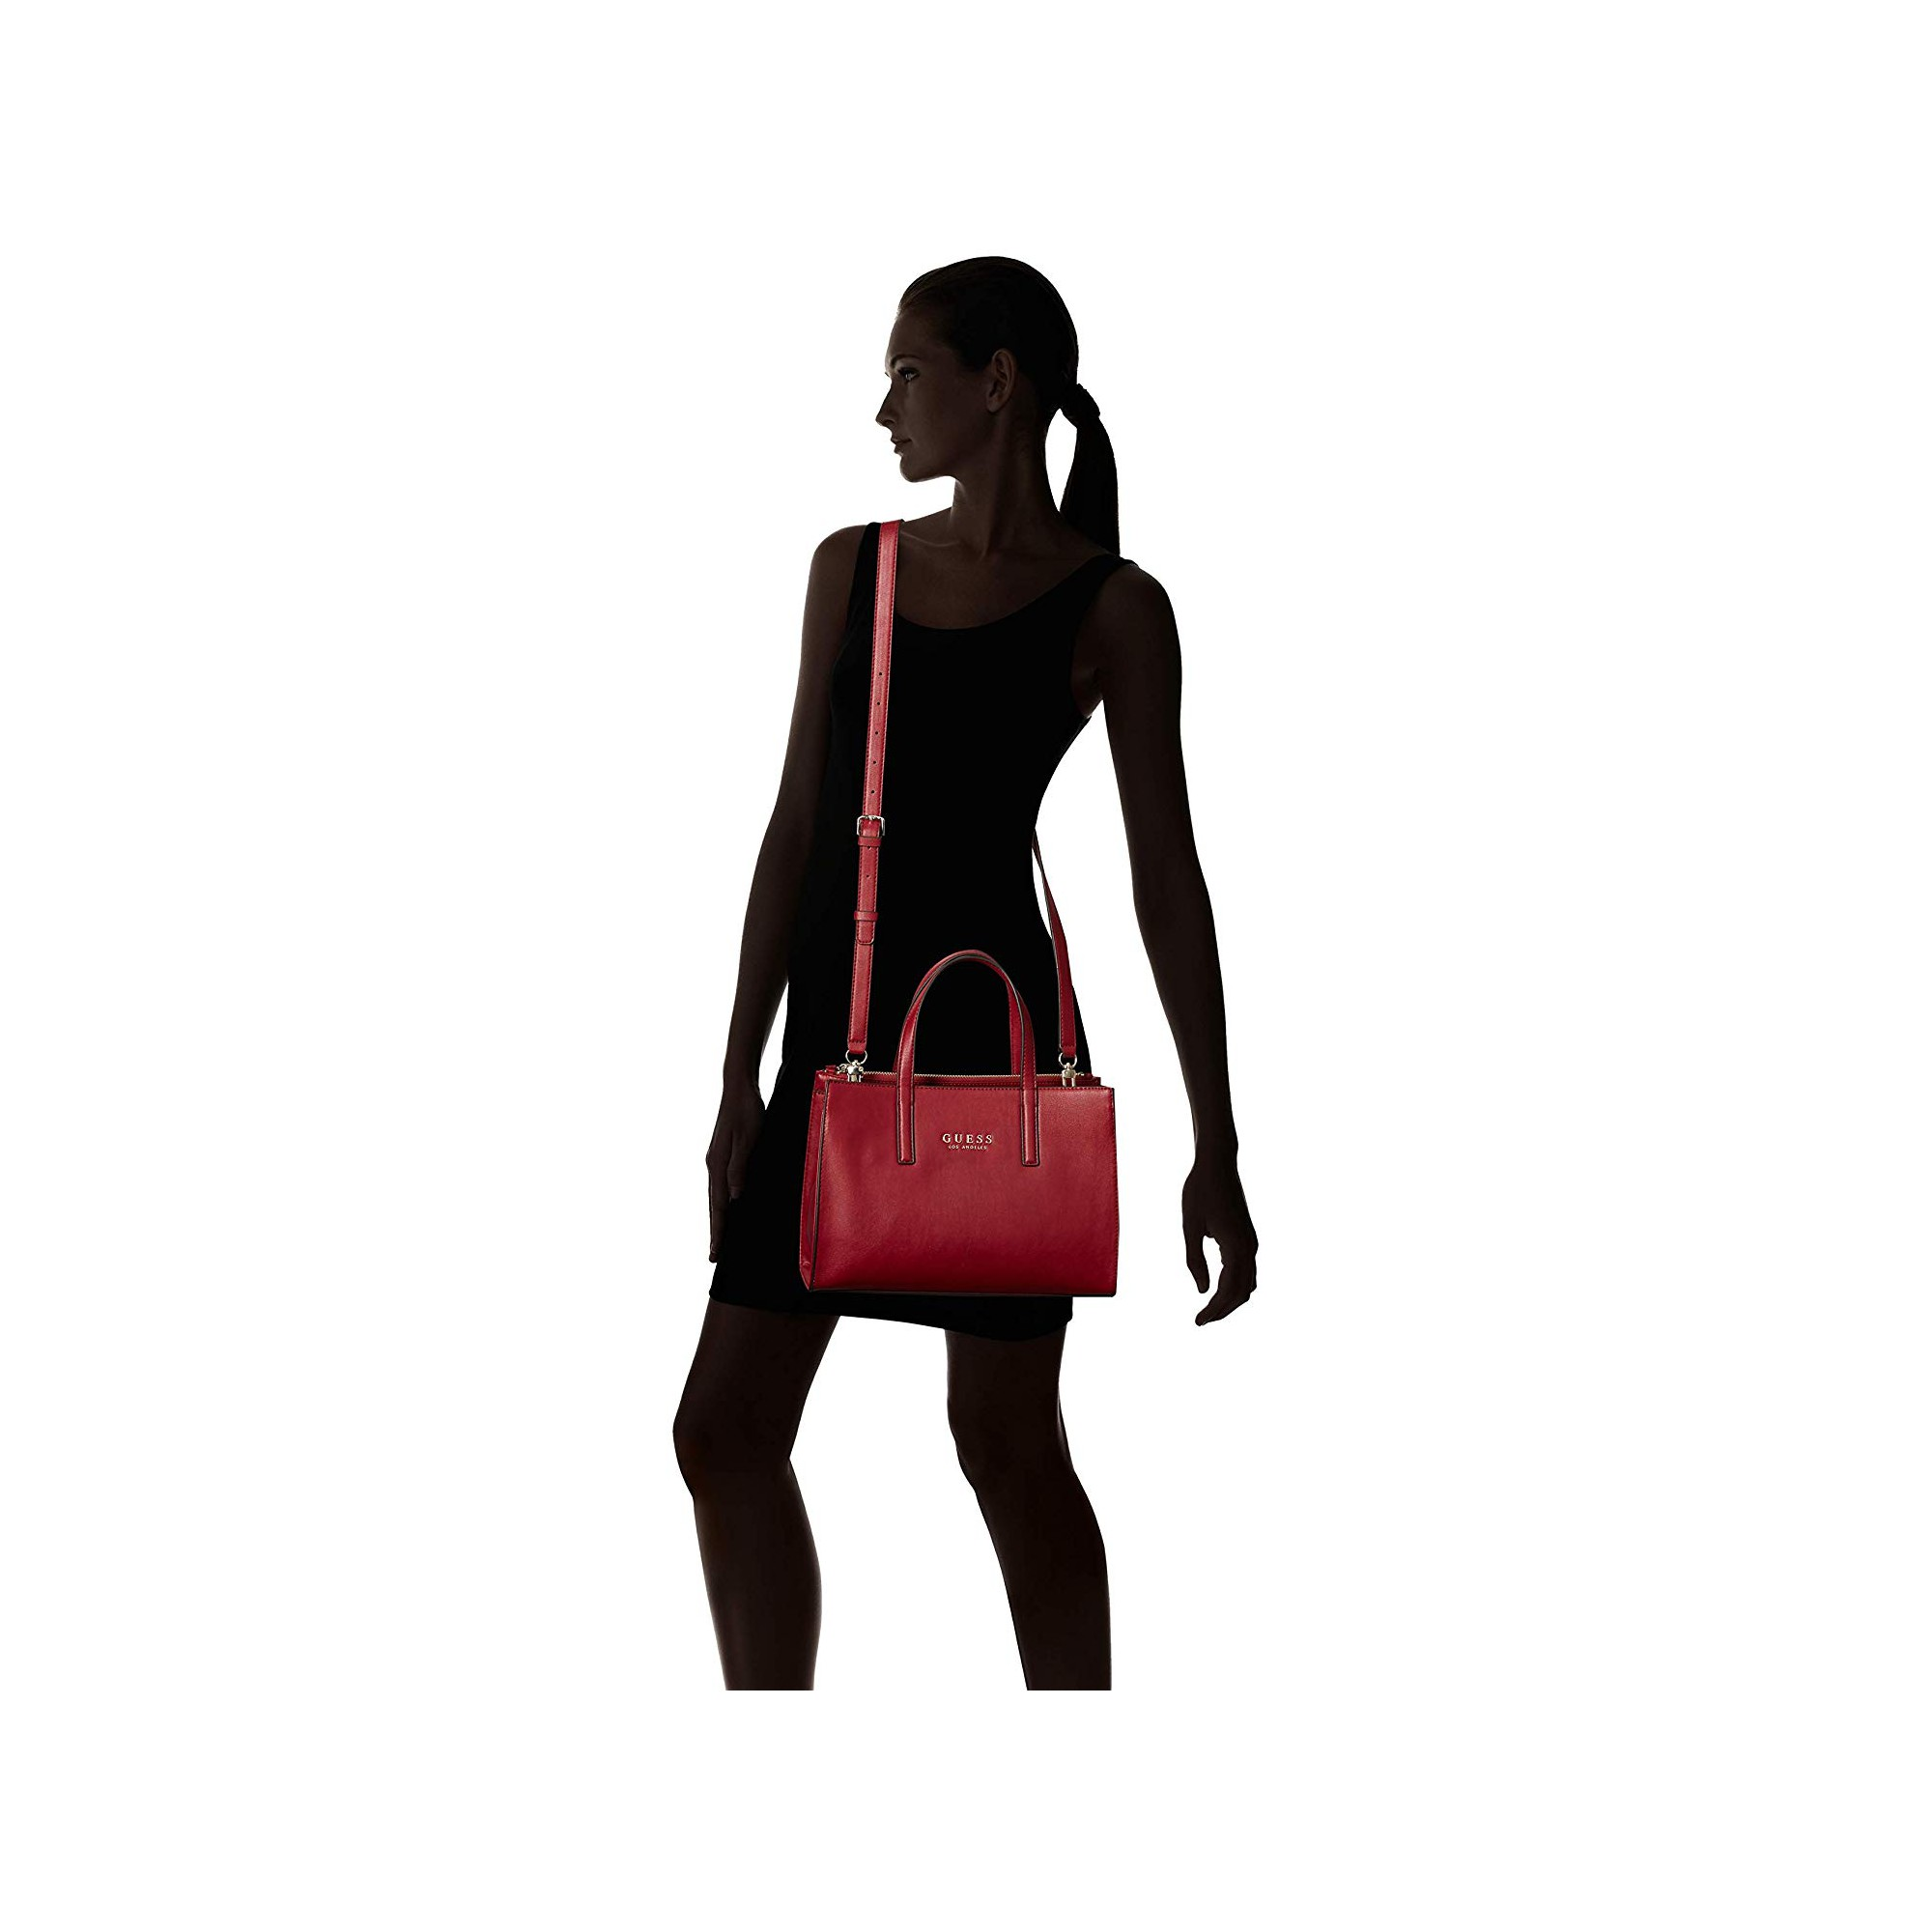 Vg709906 À In Rouge Society Guess Main Sienna 2 Sac Satchel 1 Nnw8m0